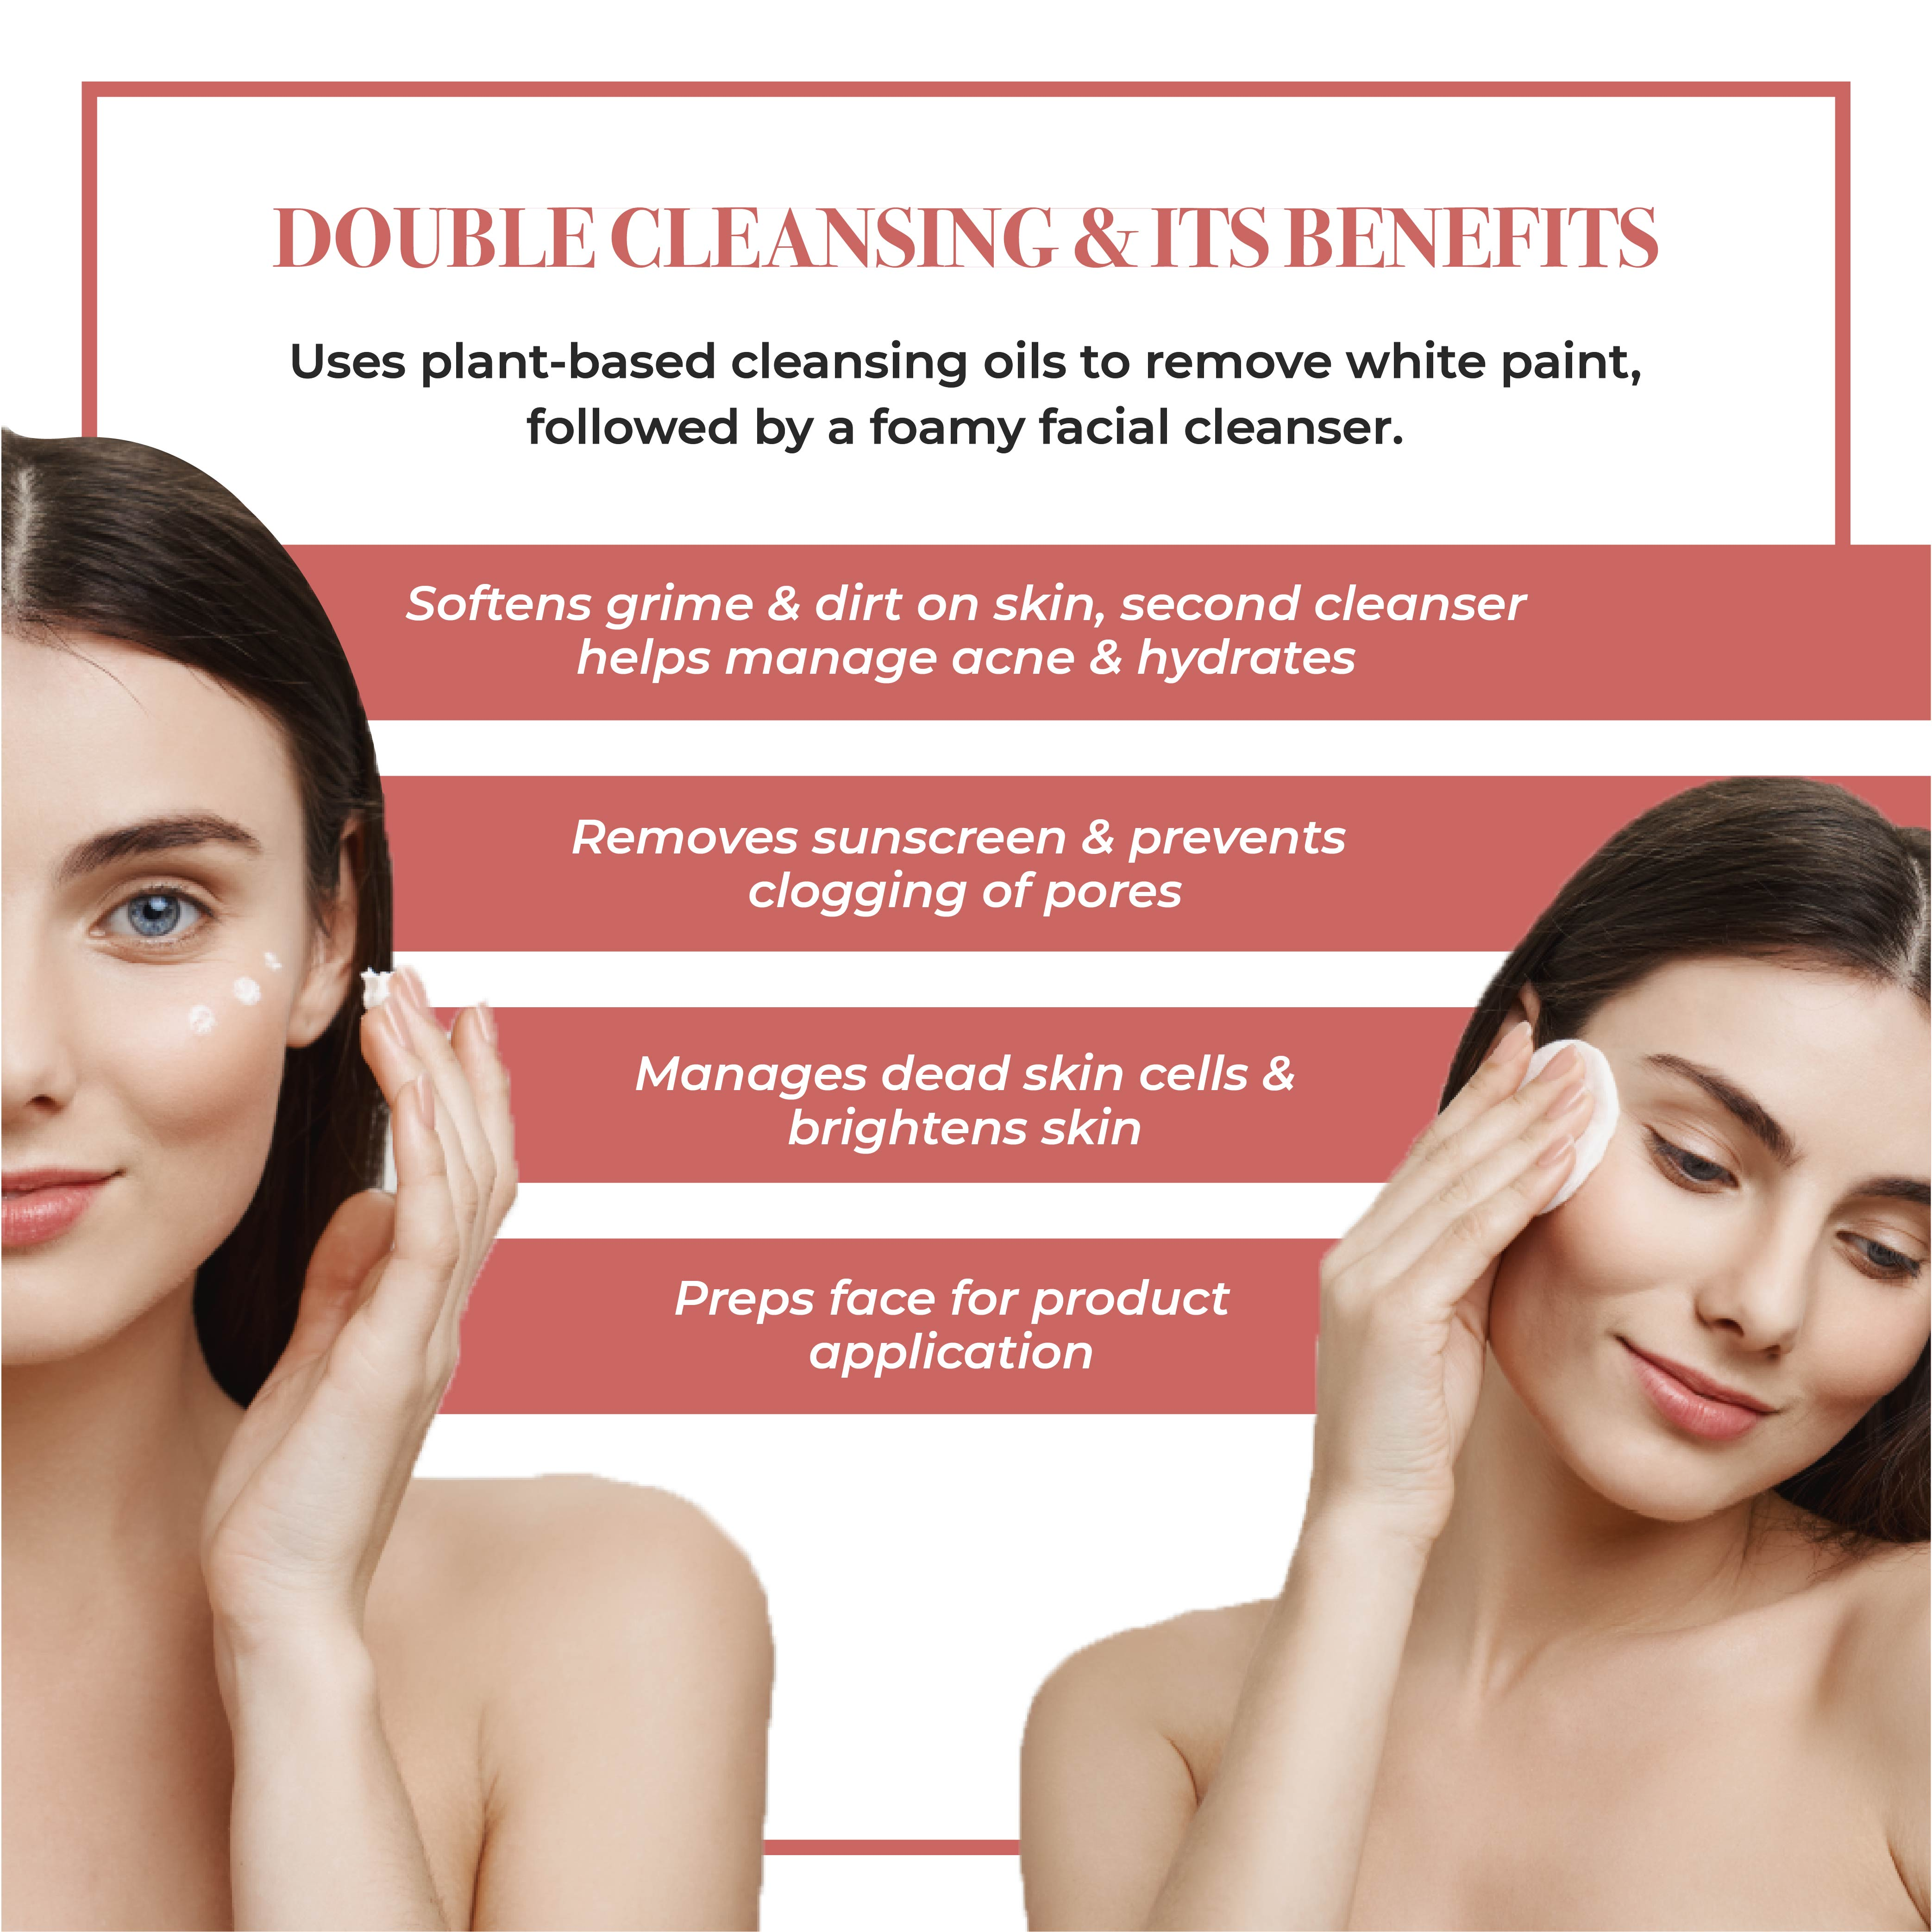 This is an image of what double cleansing is and its benefits.